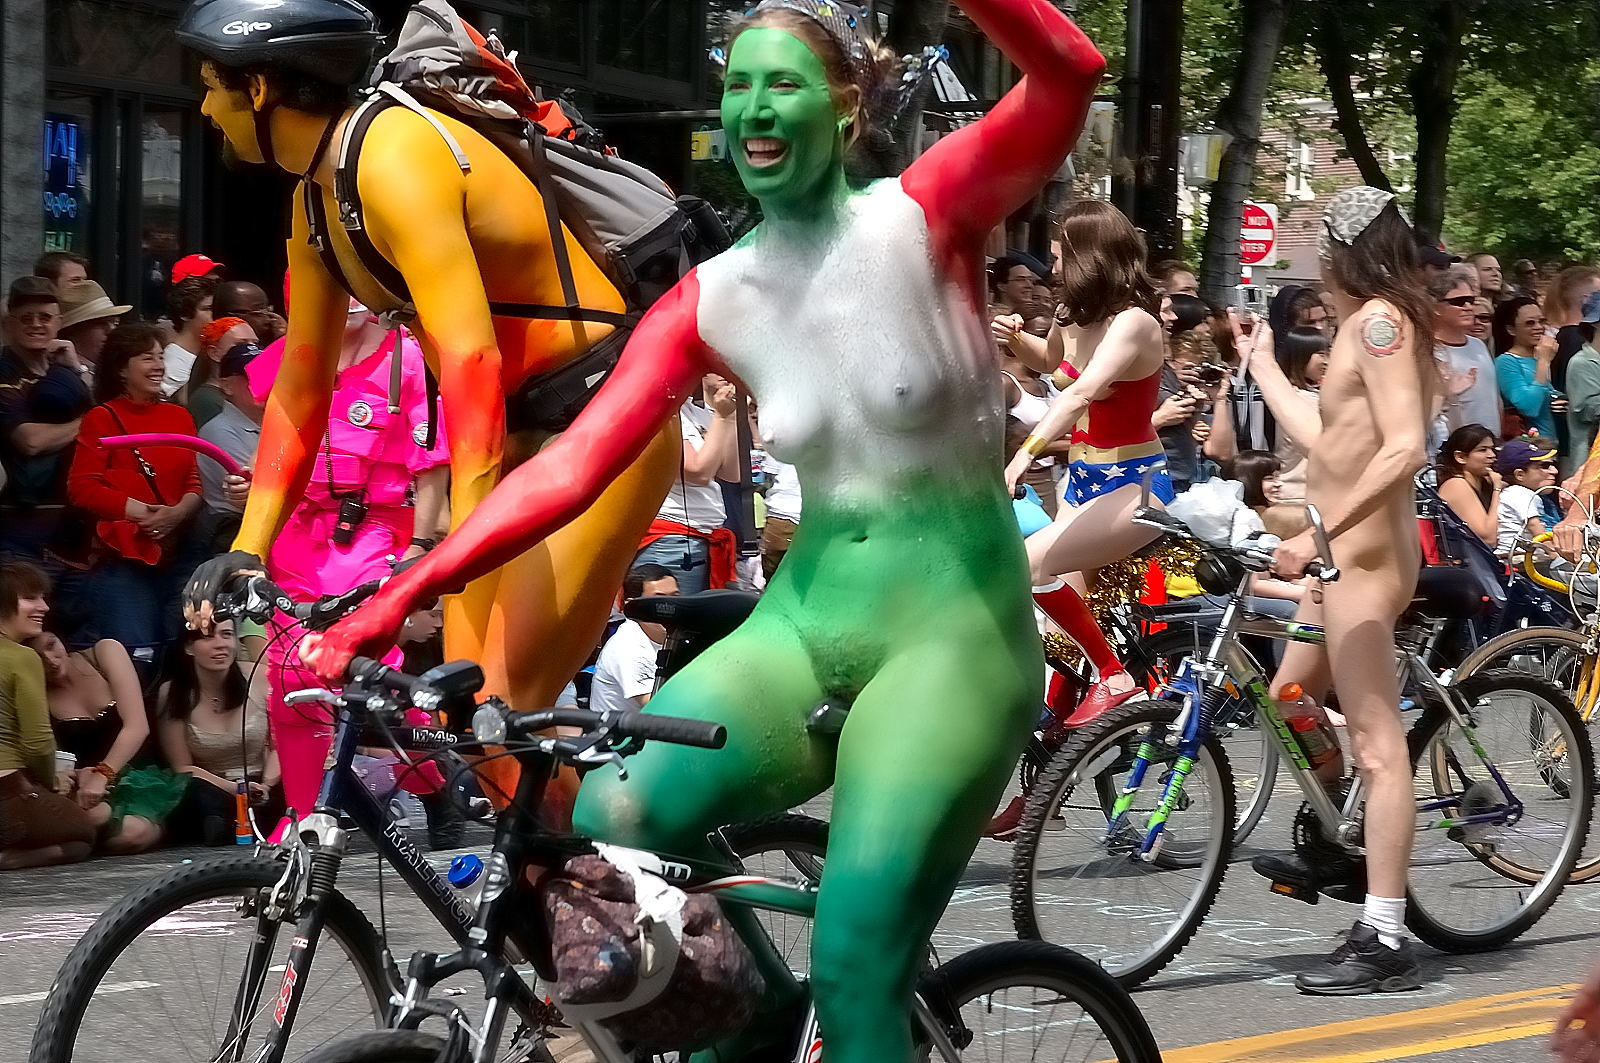 painted cyclists naked